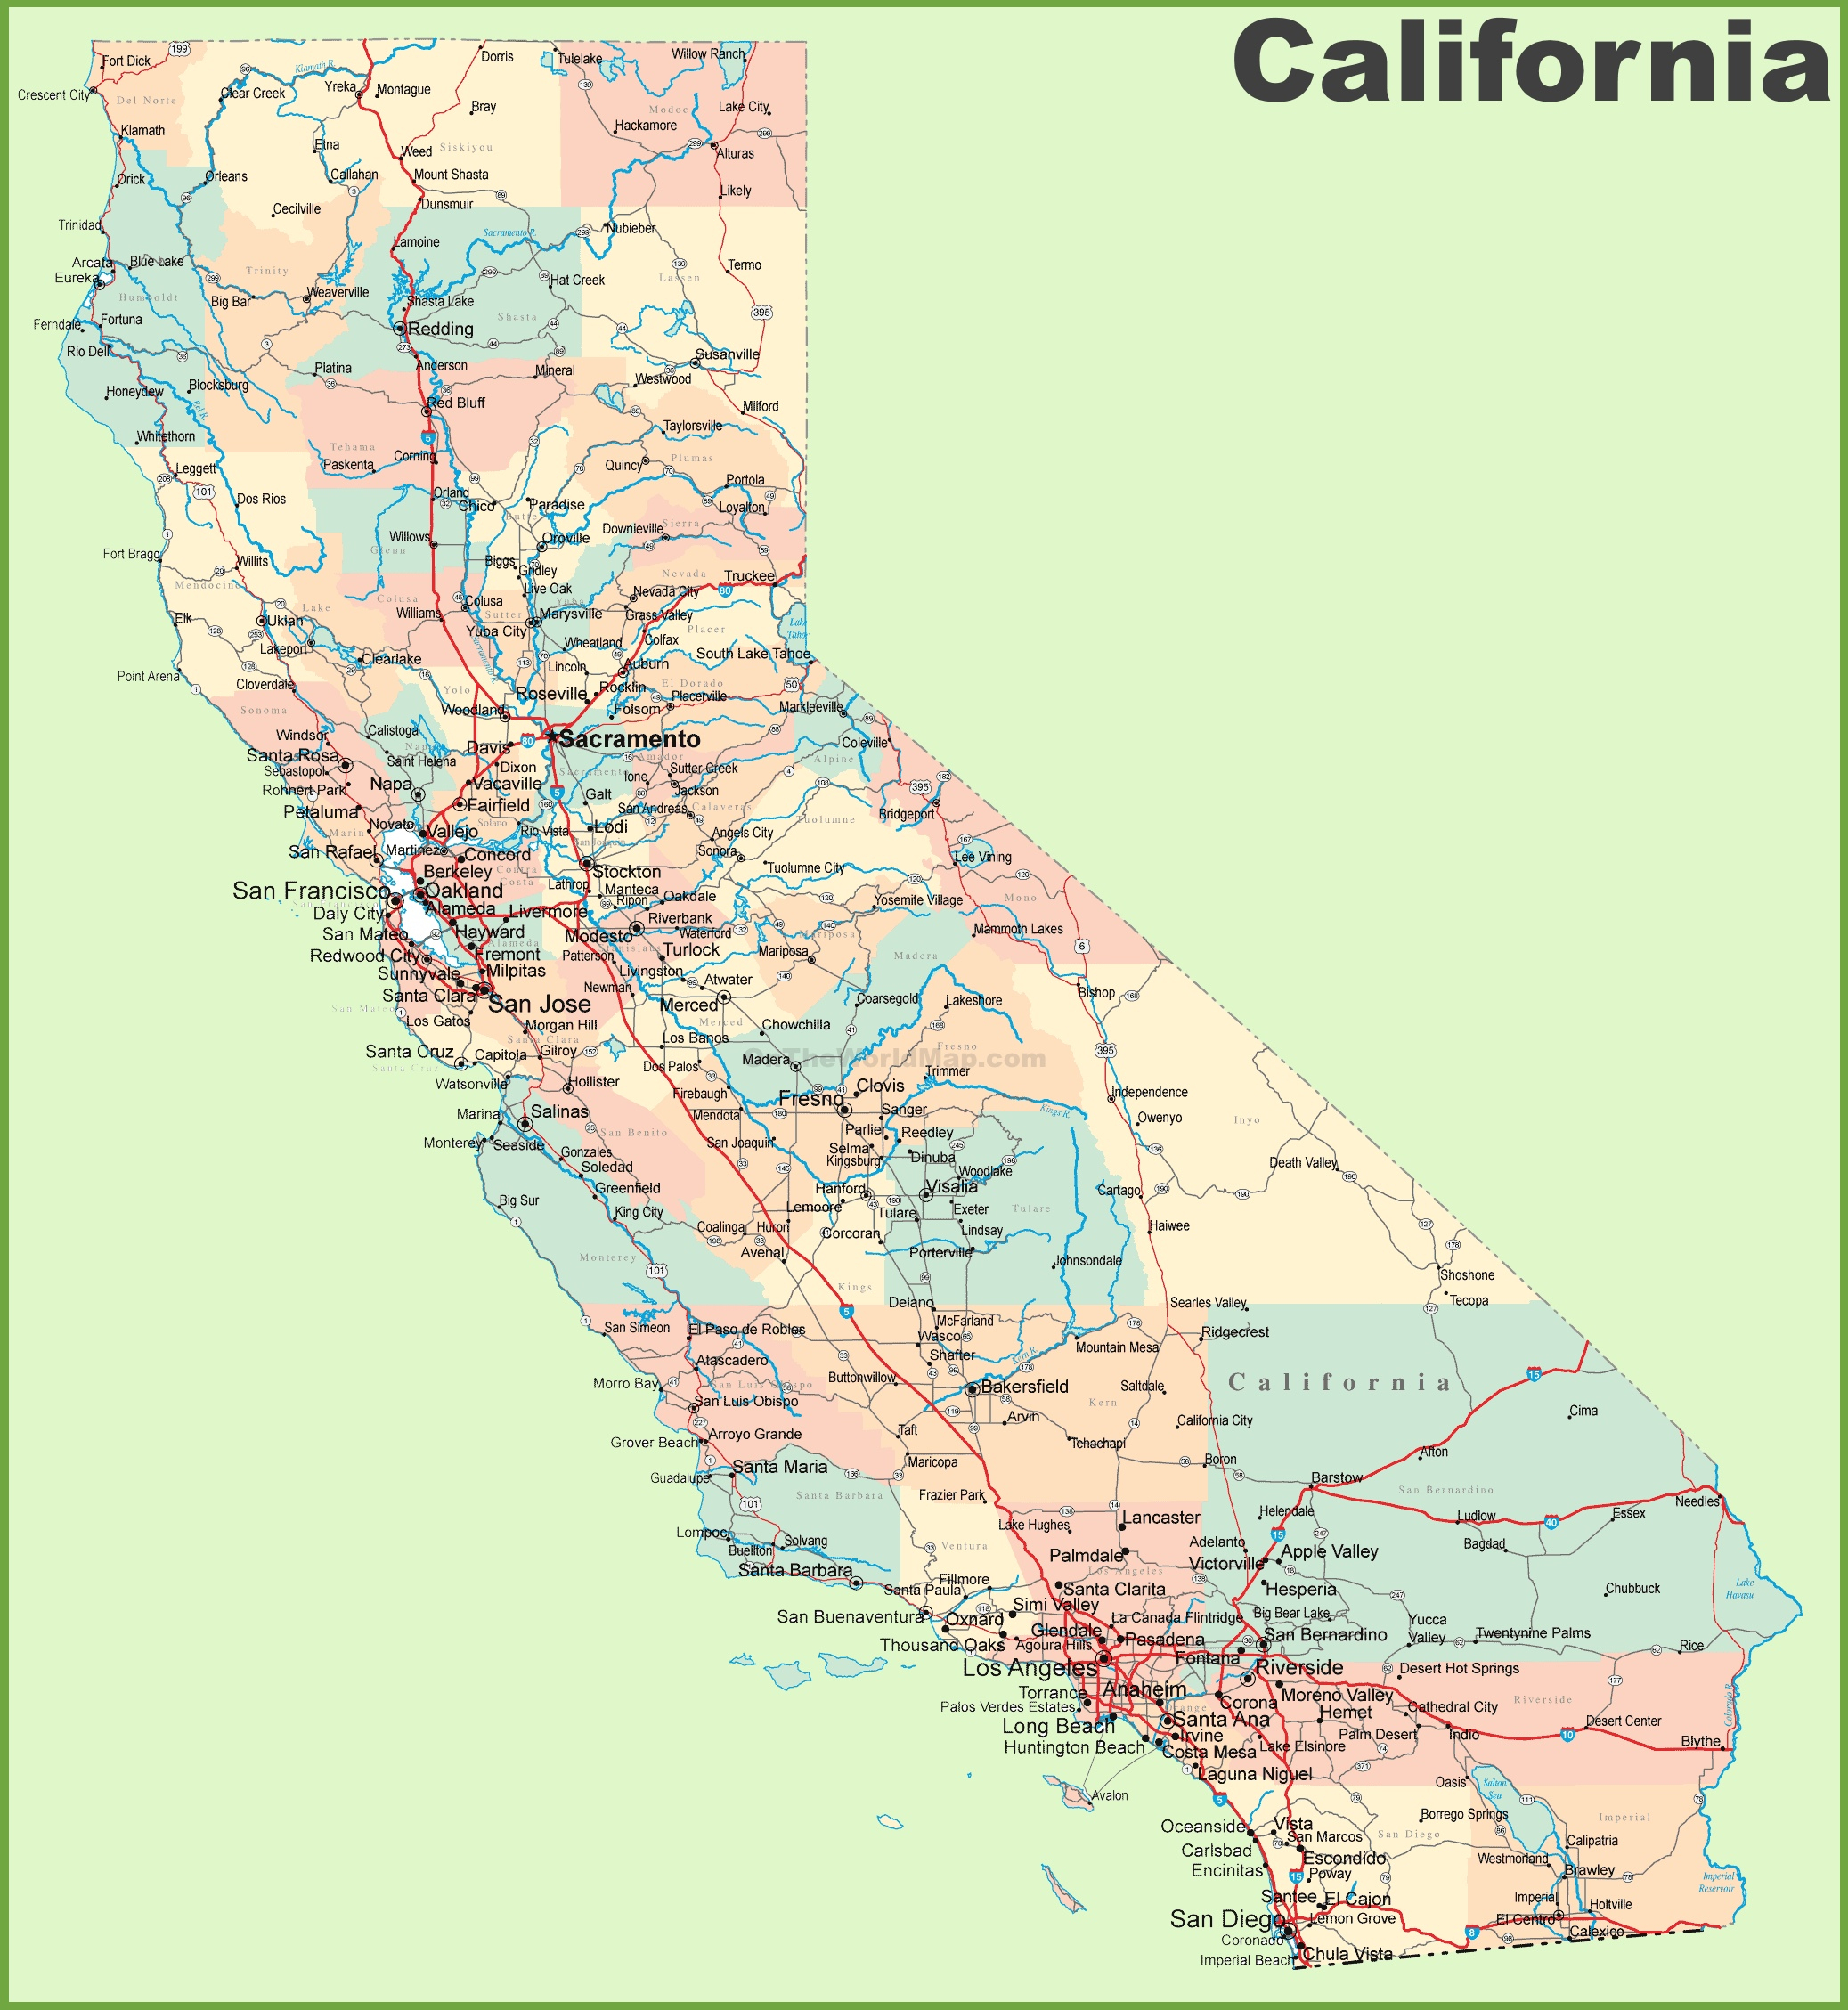 California Road Map - California County Map With Roads